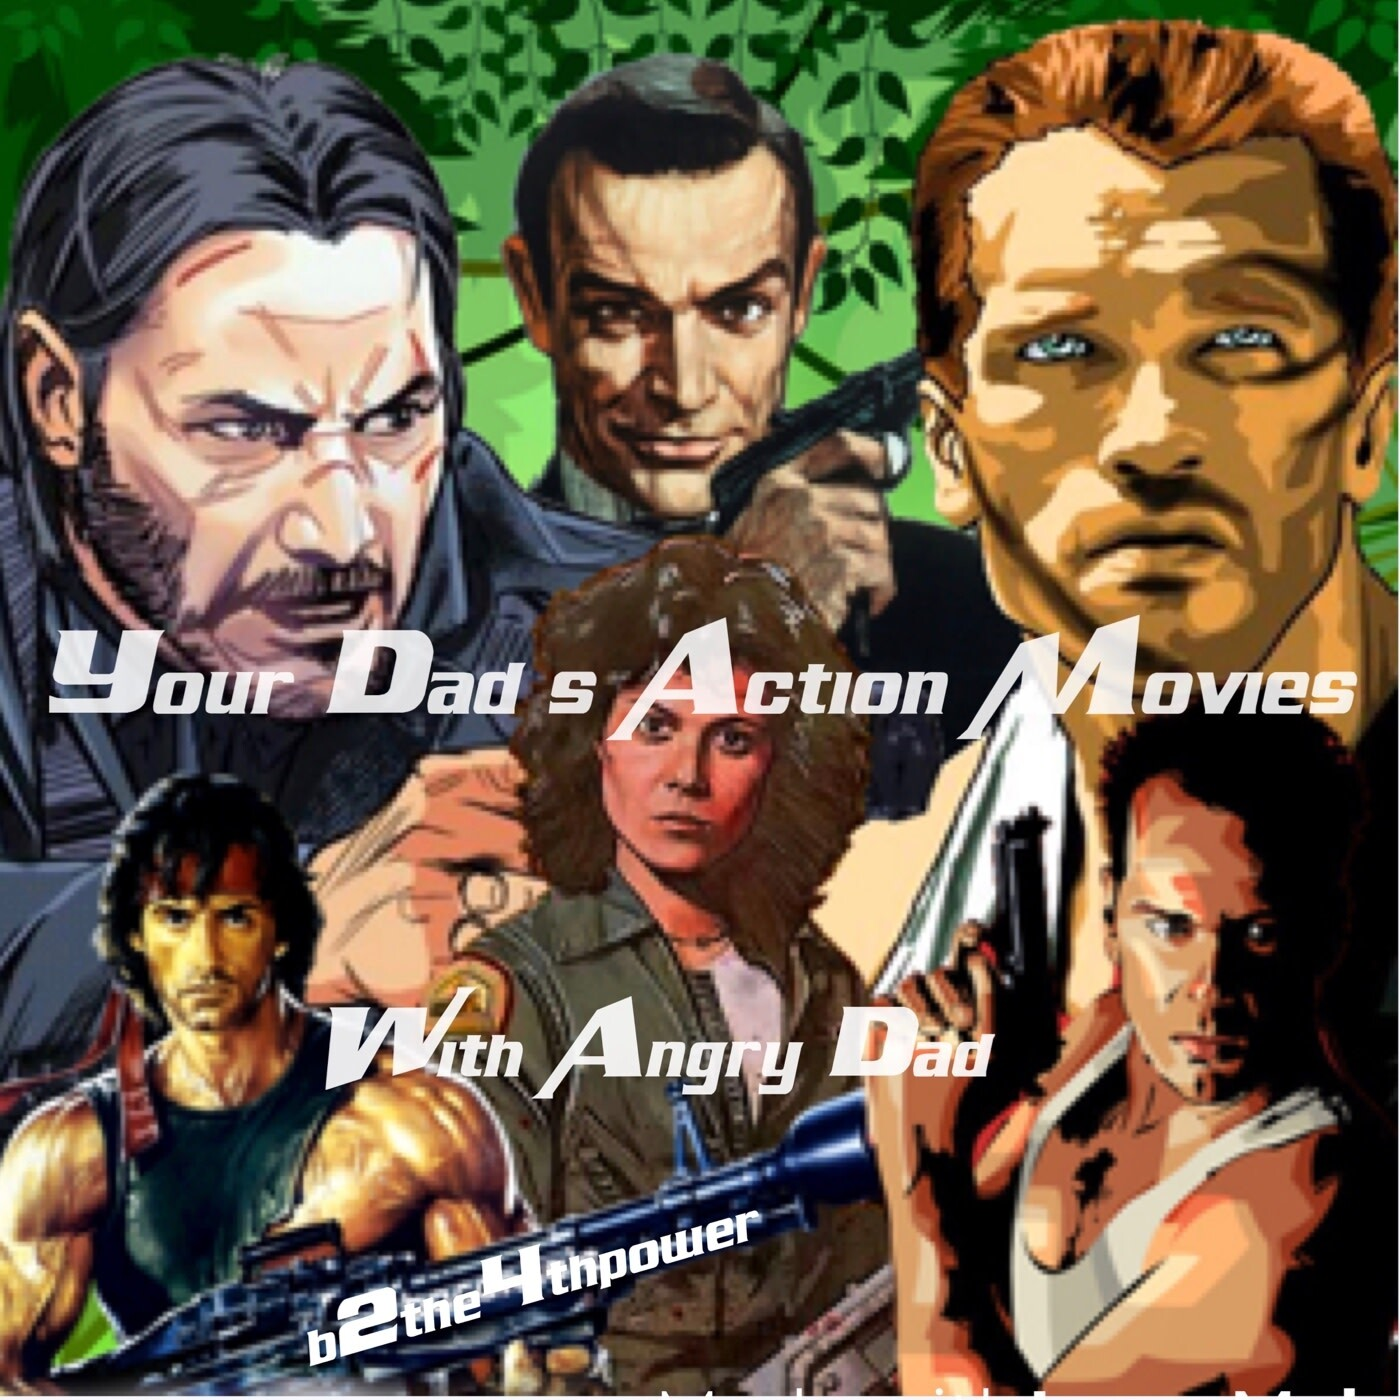 Your Dad's Action Movies Episode 5 Sylvester Stallone in Rambo Last Blood